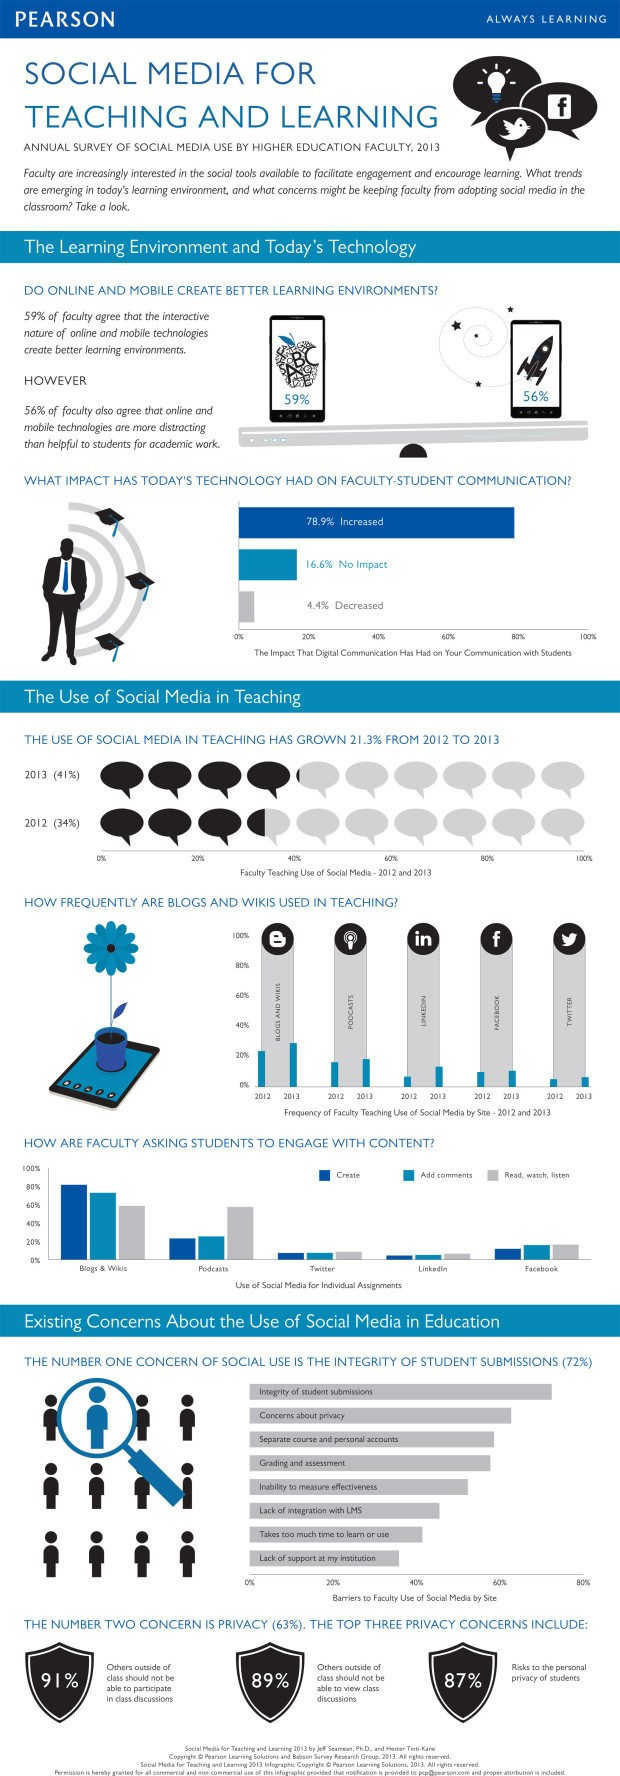 Social Learning in Higher Education 2013 Infographic Plus 8 Social Learning Guides